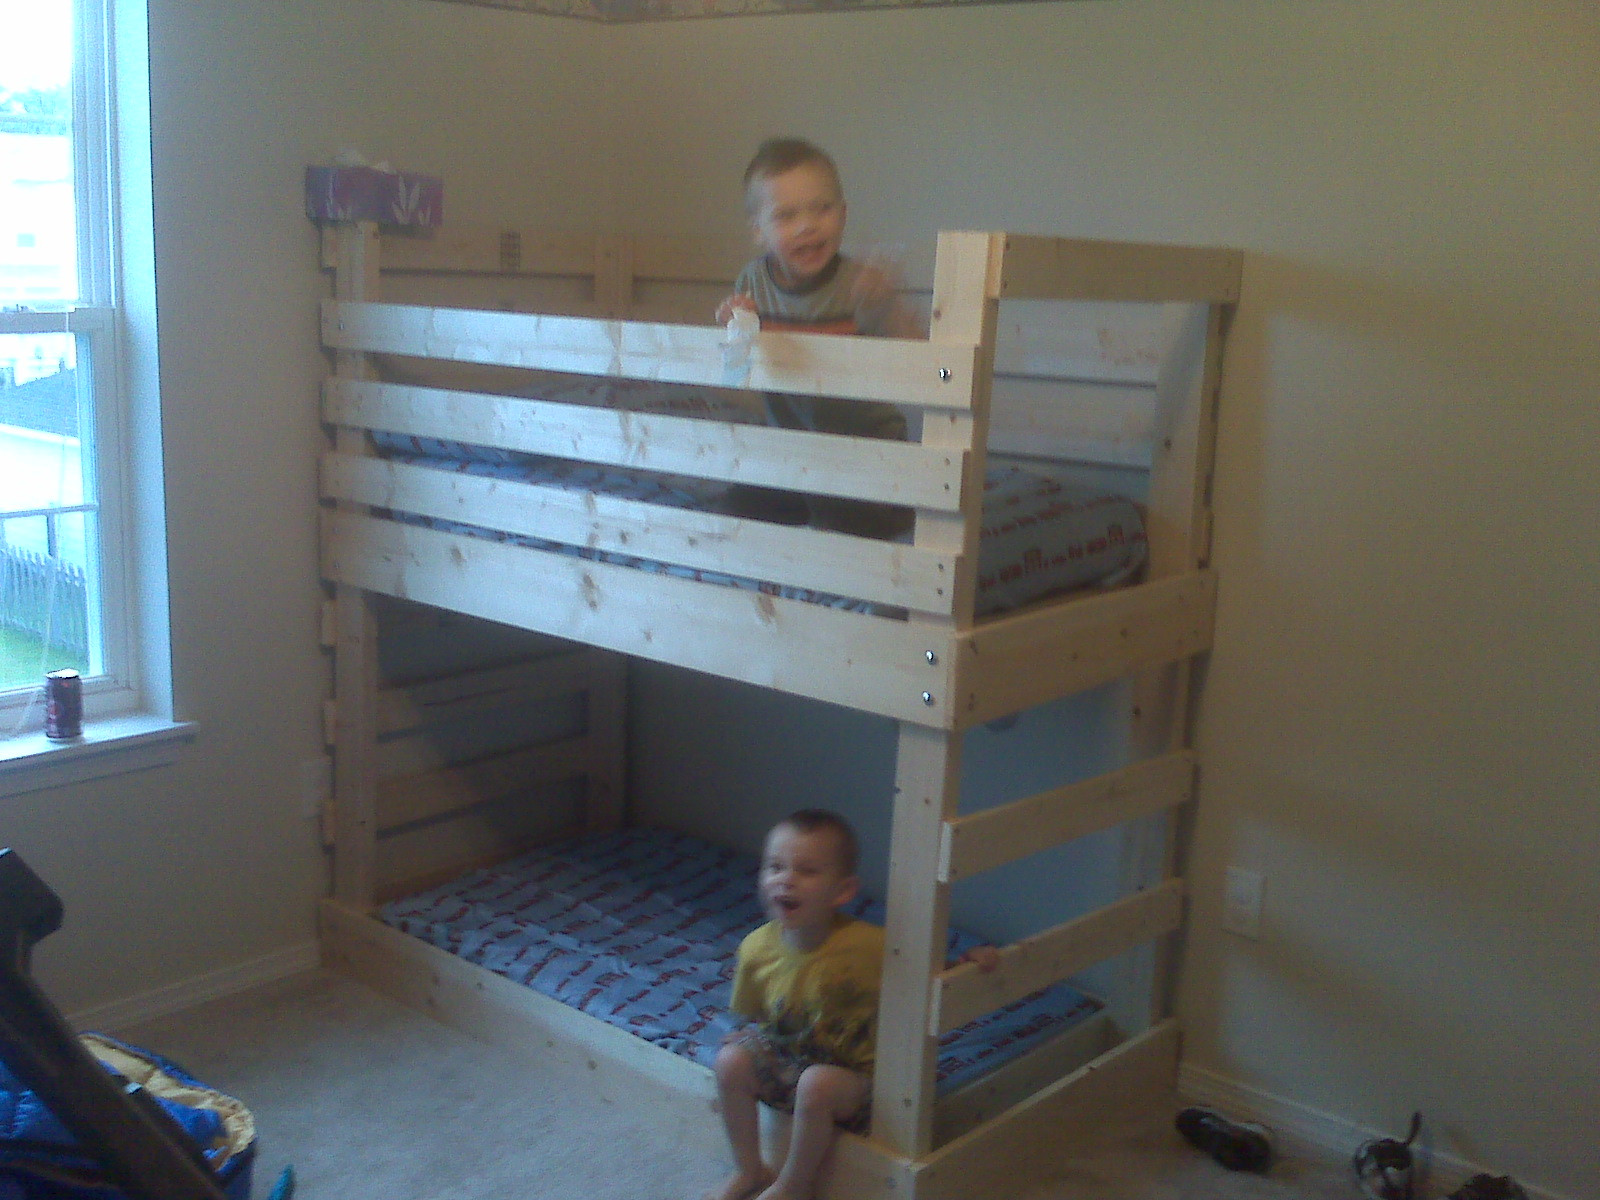 Best ideas about DIY Kids Bunk Bed . Save or Pin 25 DIY Bunk Beds with Plans Now.